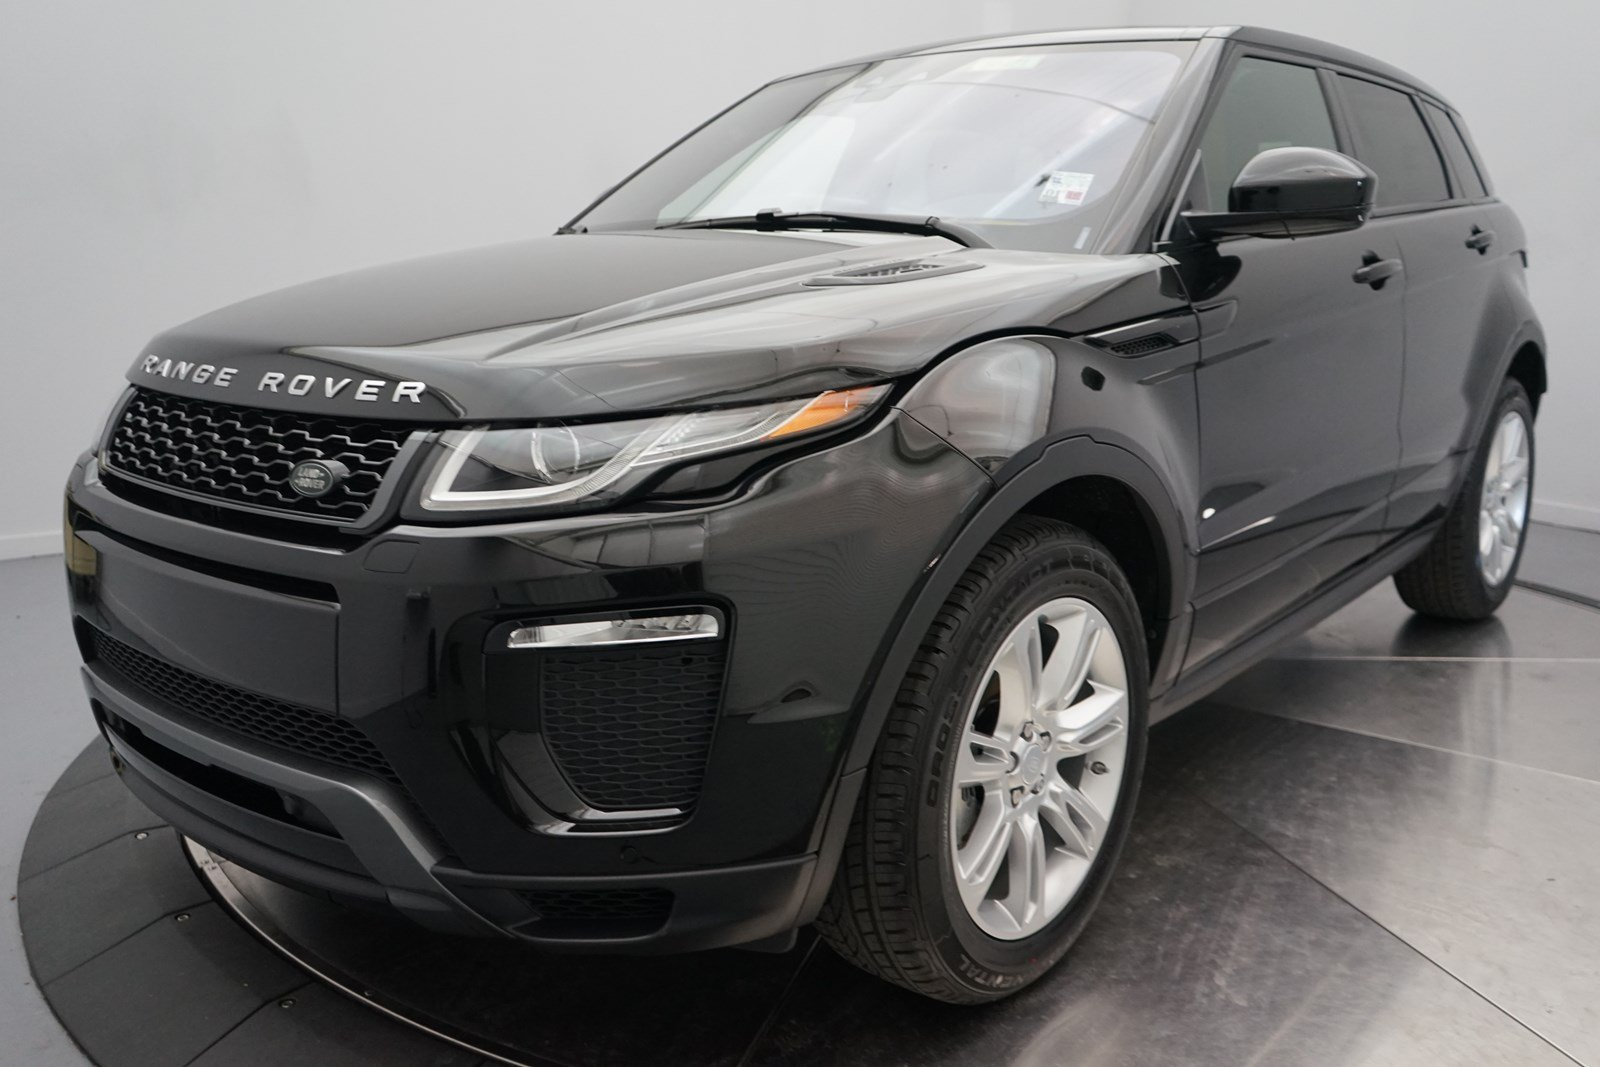 New 2018 Land Rover Range Rover Evoque HSE Dynamic 4 Door ...